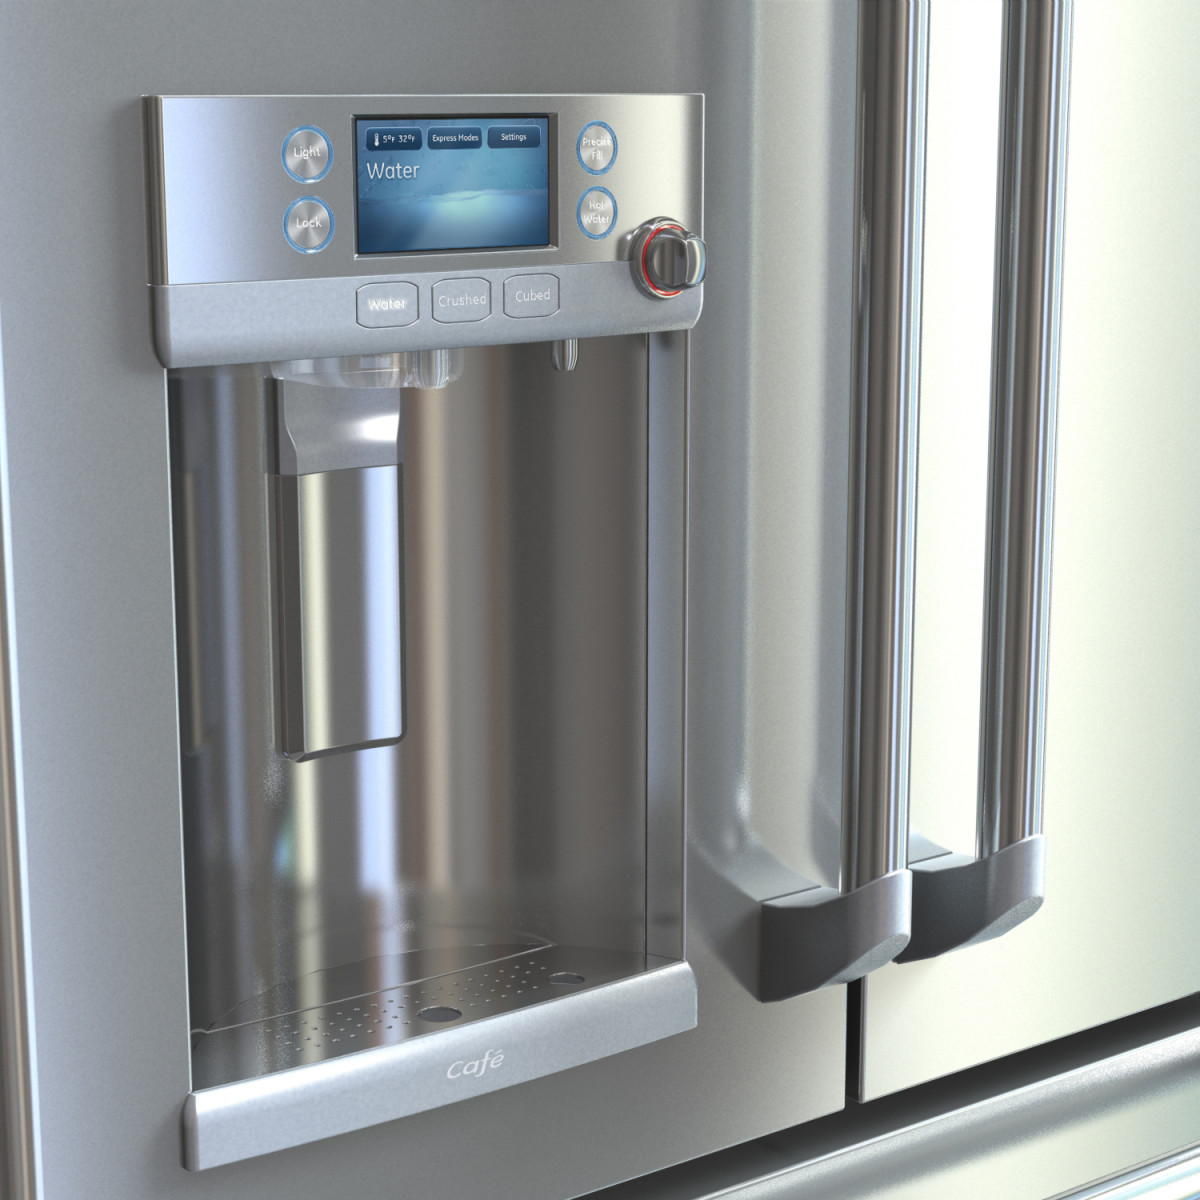 Stainless Steel Refrigerator with Water Dispenser